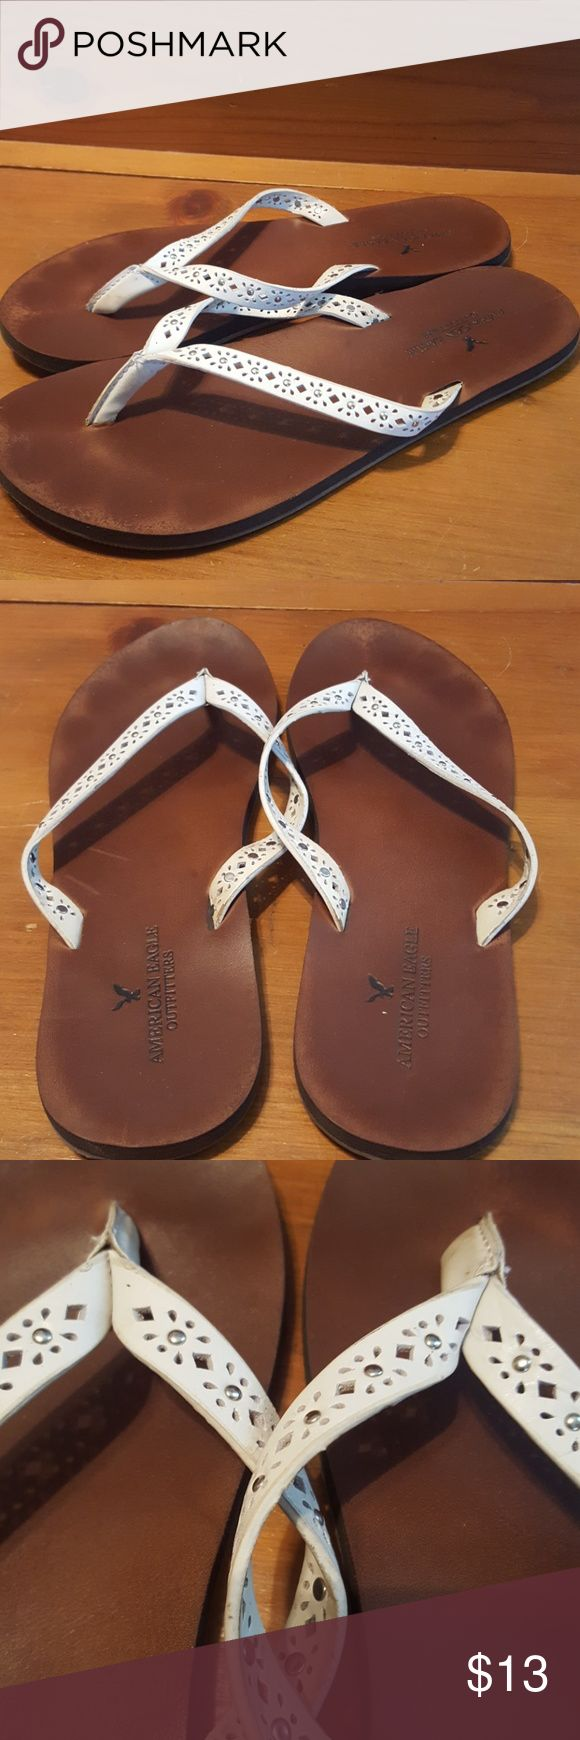 American Eagle Outfitters leather flip flops American Eagle Outfitters brown and white, leather flip flops with silver detailing, size 8 American Eagle Outfitters Shoes Sandals